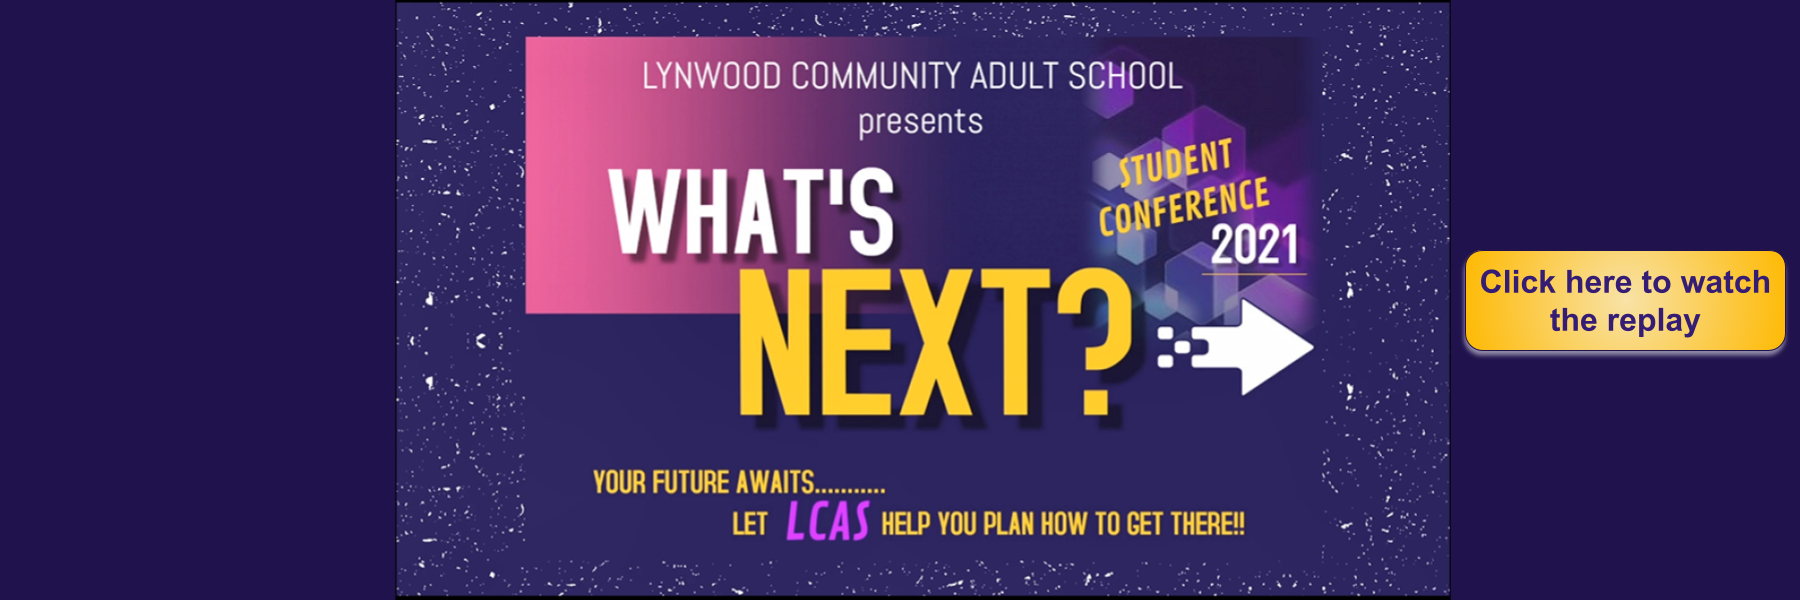 Lynwood Community Adult School Presents the What's Next Conference 2021 click rectangle in lower right corner to connect to the video.